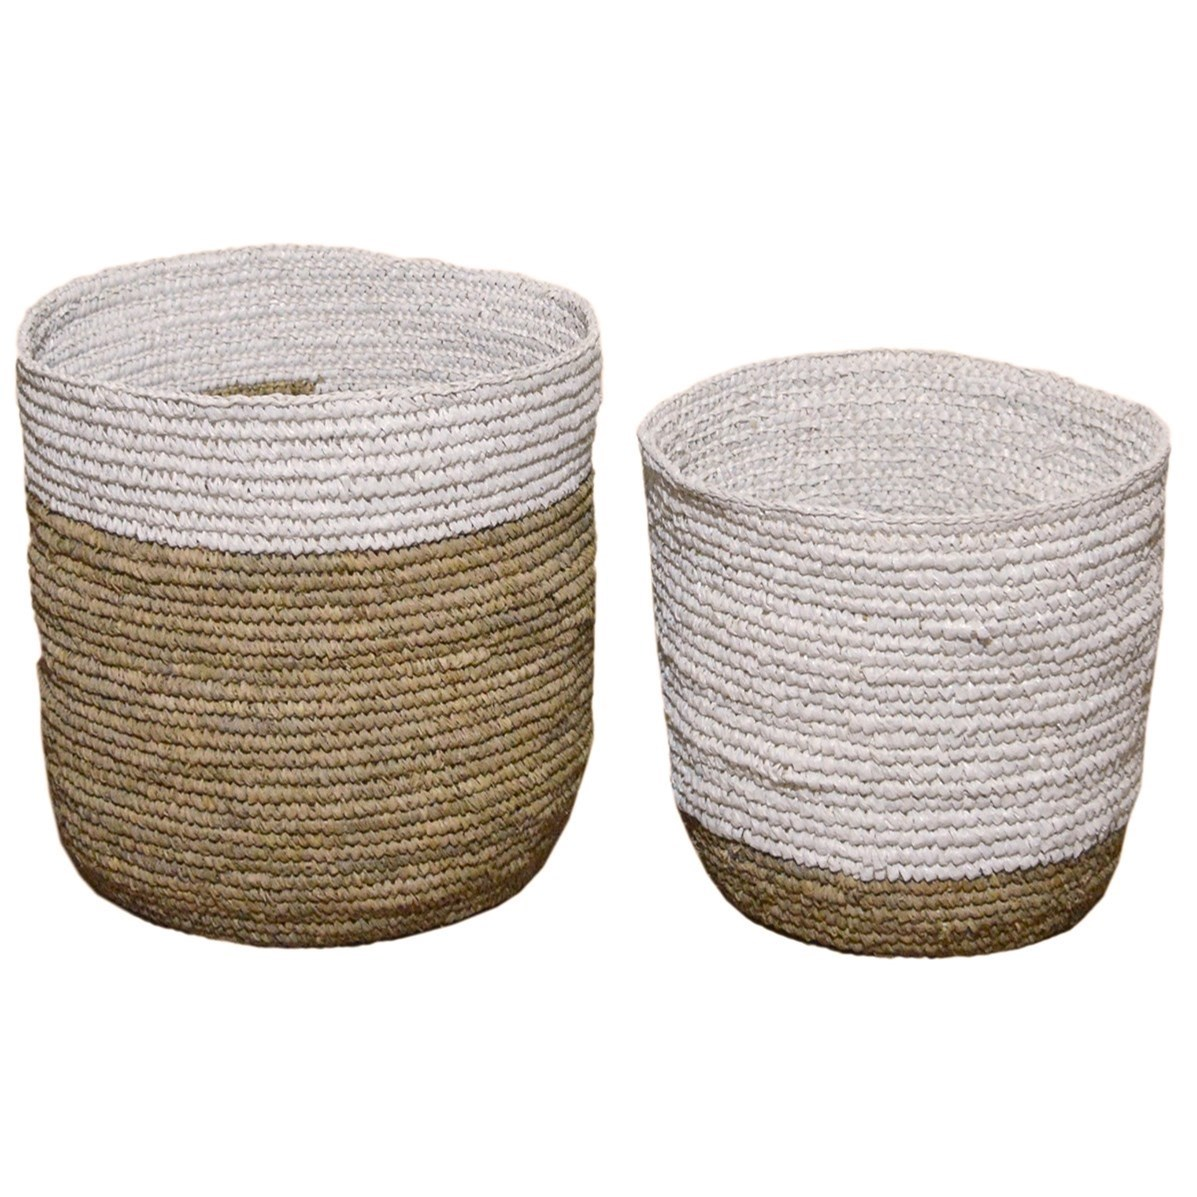 Accessories Basket Set of 2 at Williams & Kay